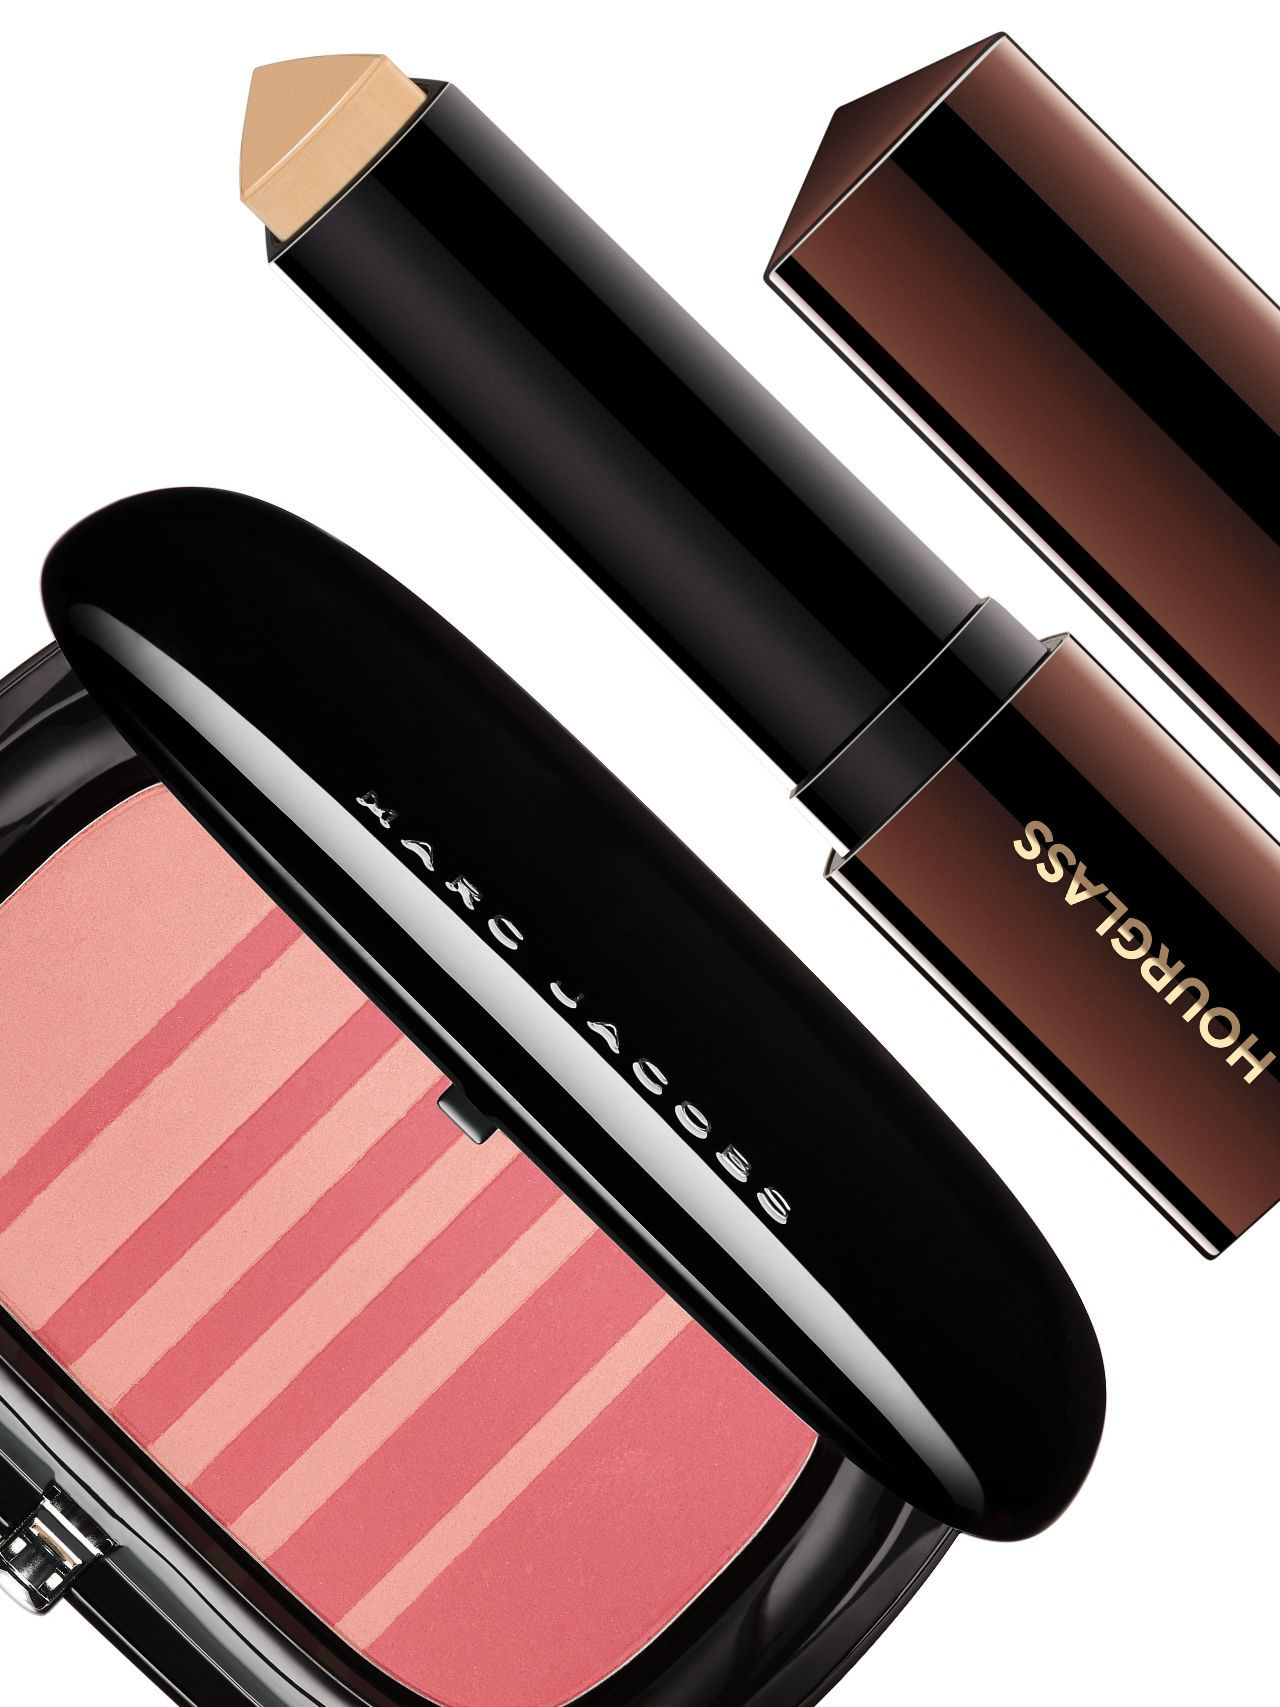 New This Month: July 2016 | New In Beauty